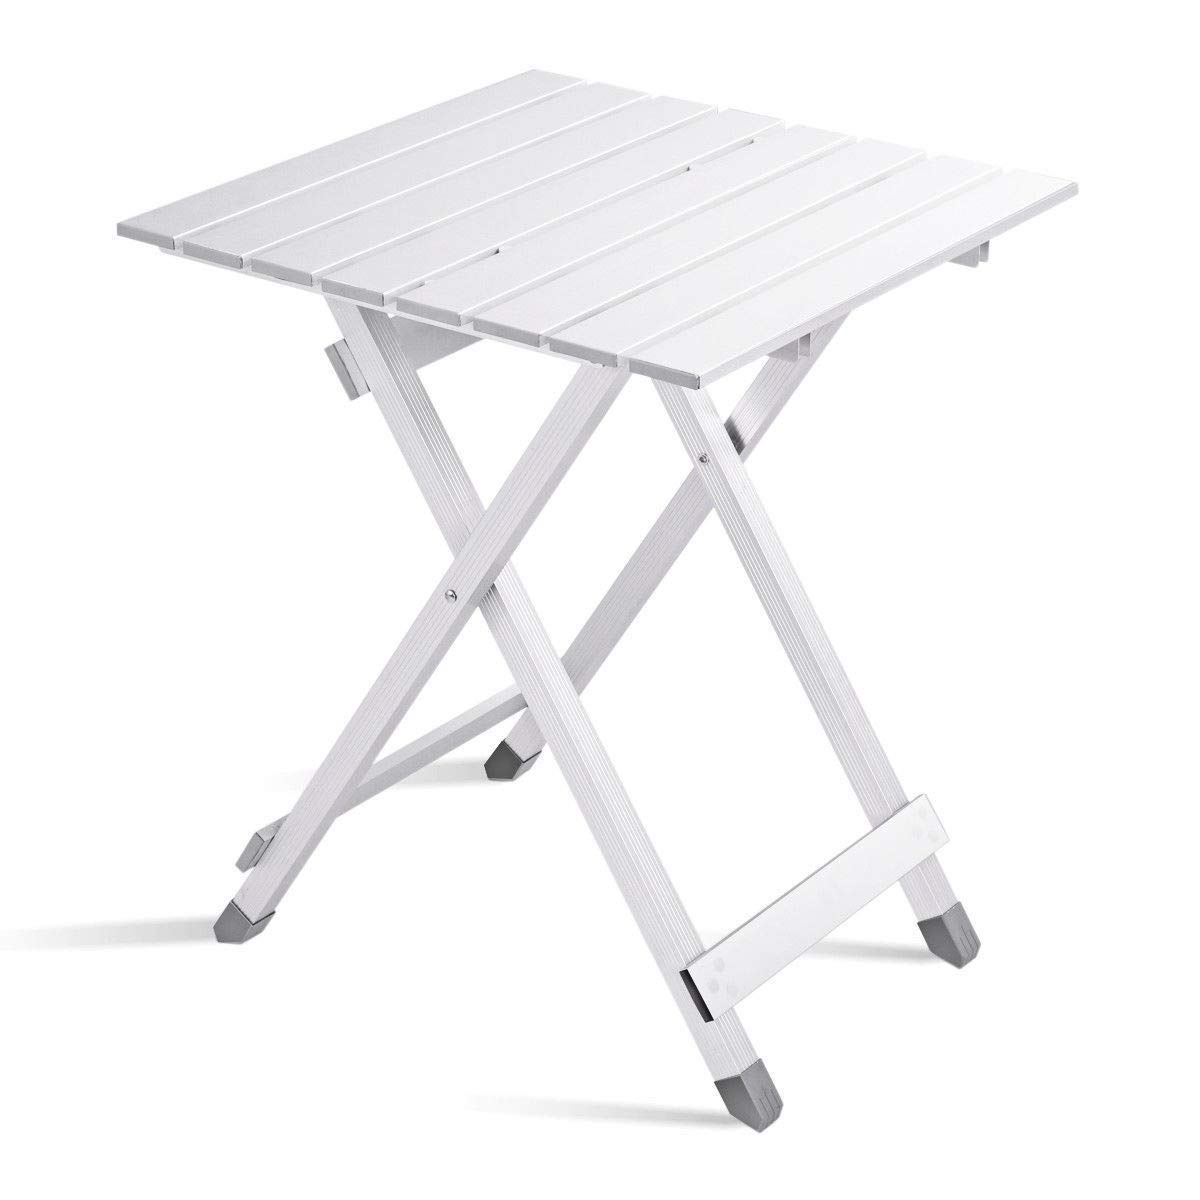 PNPGlobal Outdoor Folding Portable Patio Side Table Small Lightweight Camping Party Garden New White by PNPGlobal